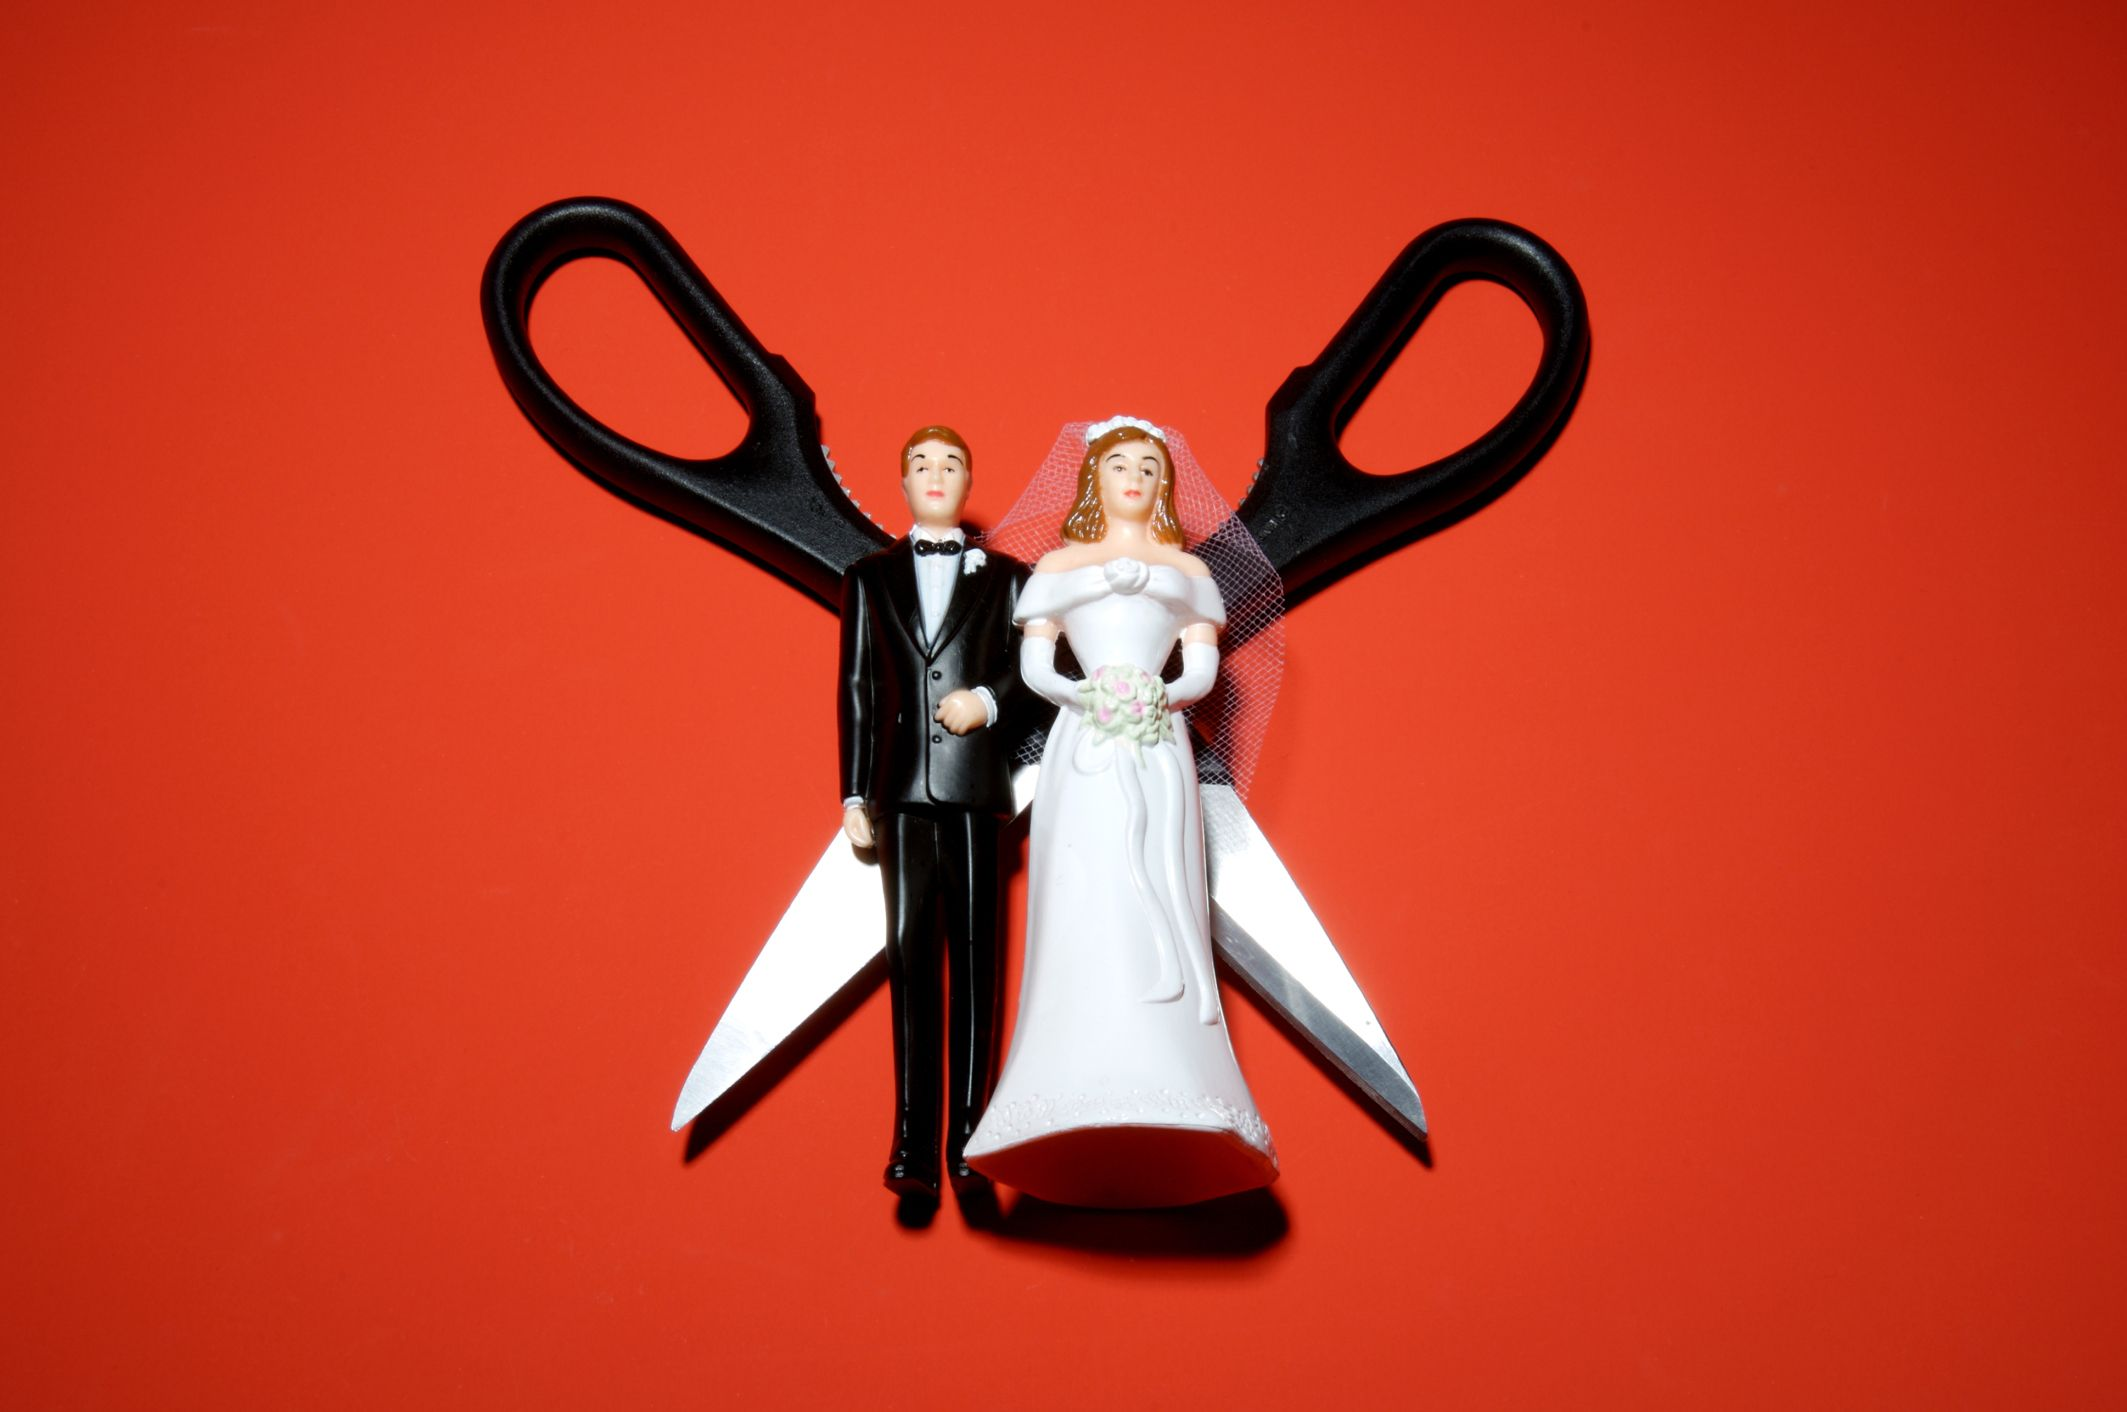 15 Sneaky Signs a Marriage May End in Divorce 15 Sneaky Signs a Marriage May End in Divorce new photo